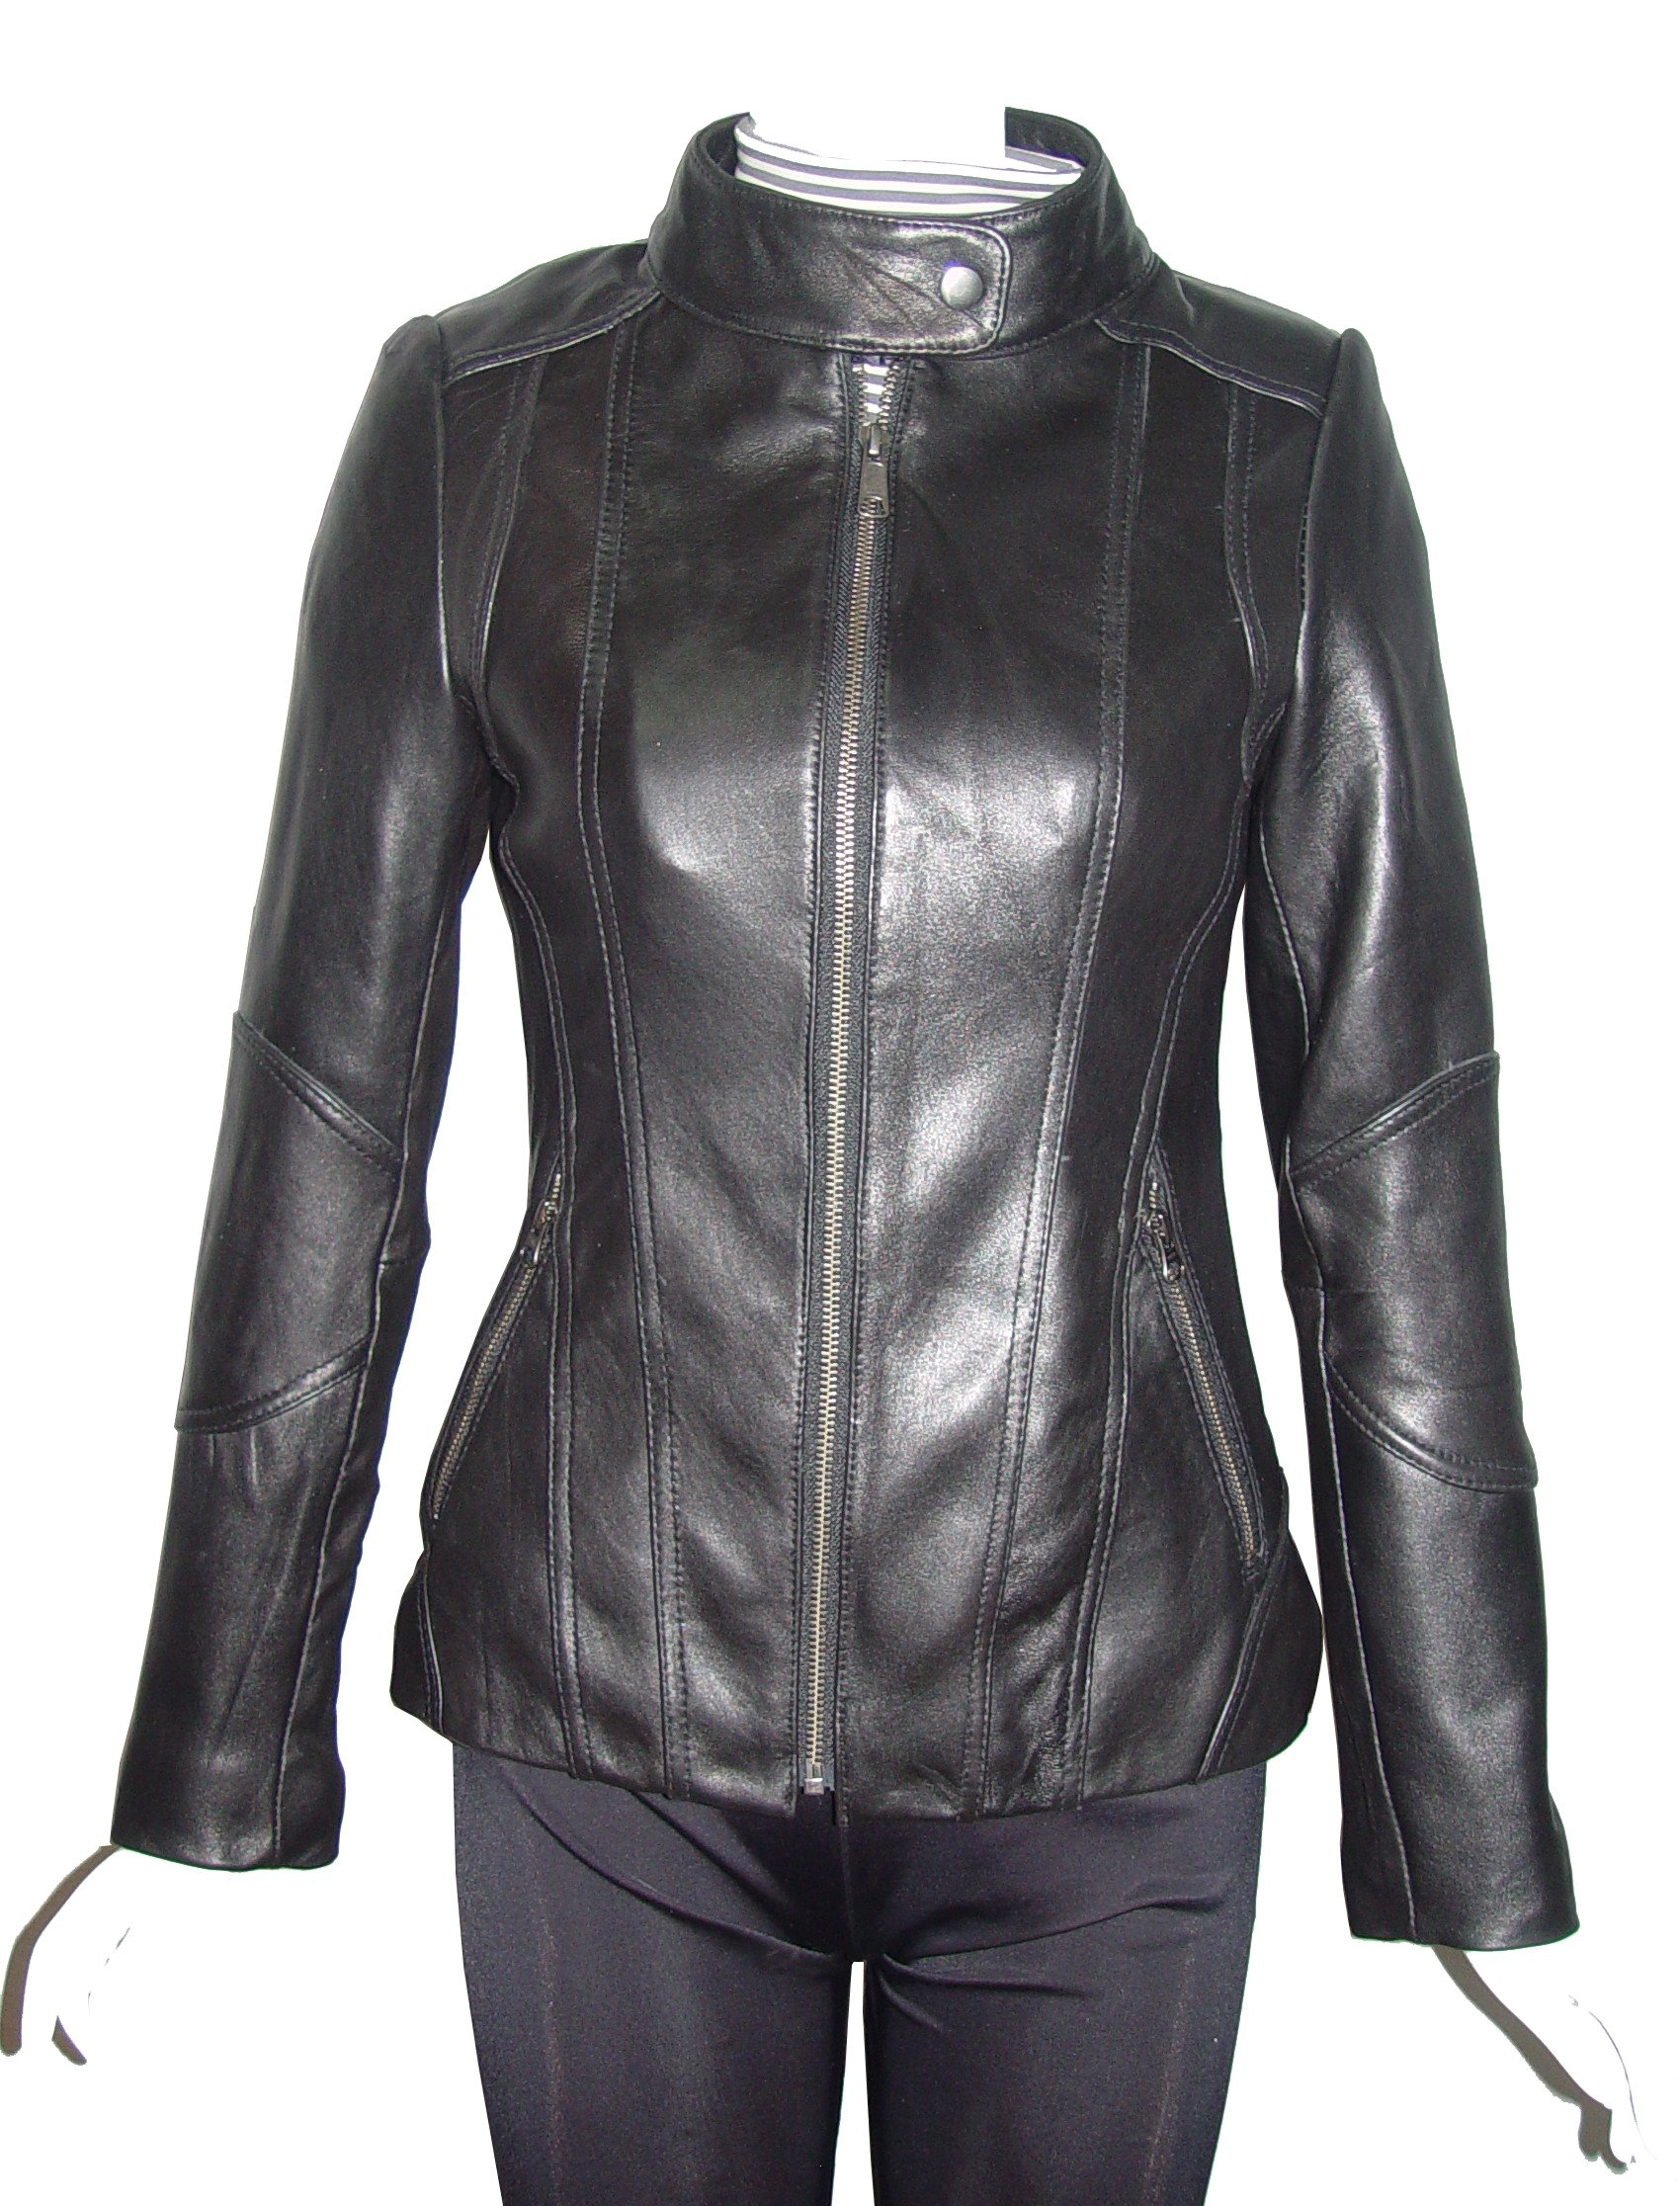 Nettailor 4115 Real Leather Jackets Best Cool Stylish Expensive Lining